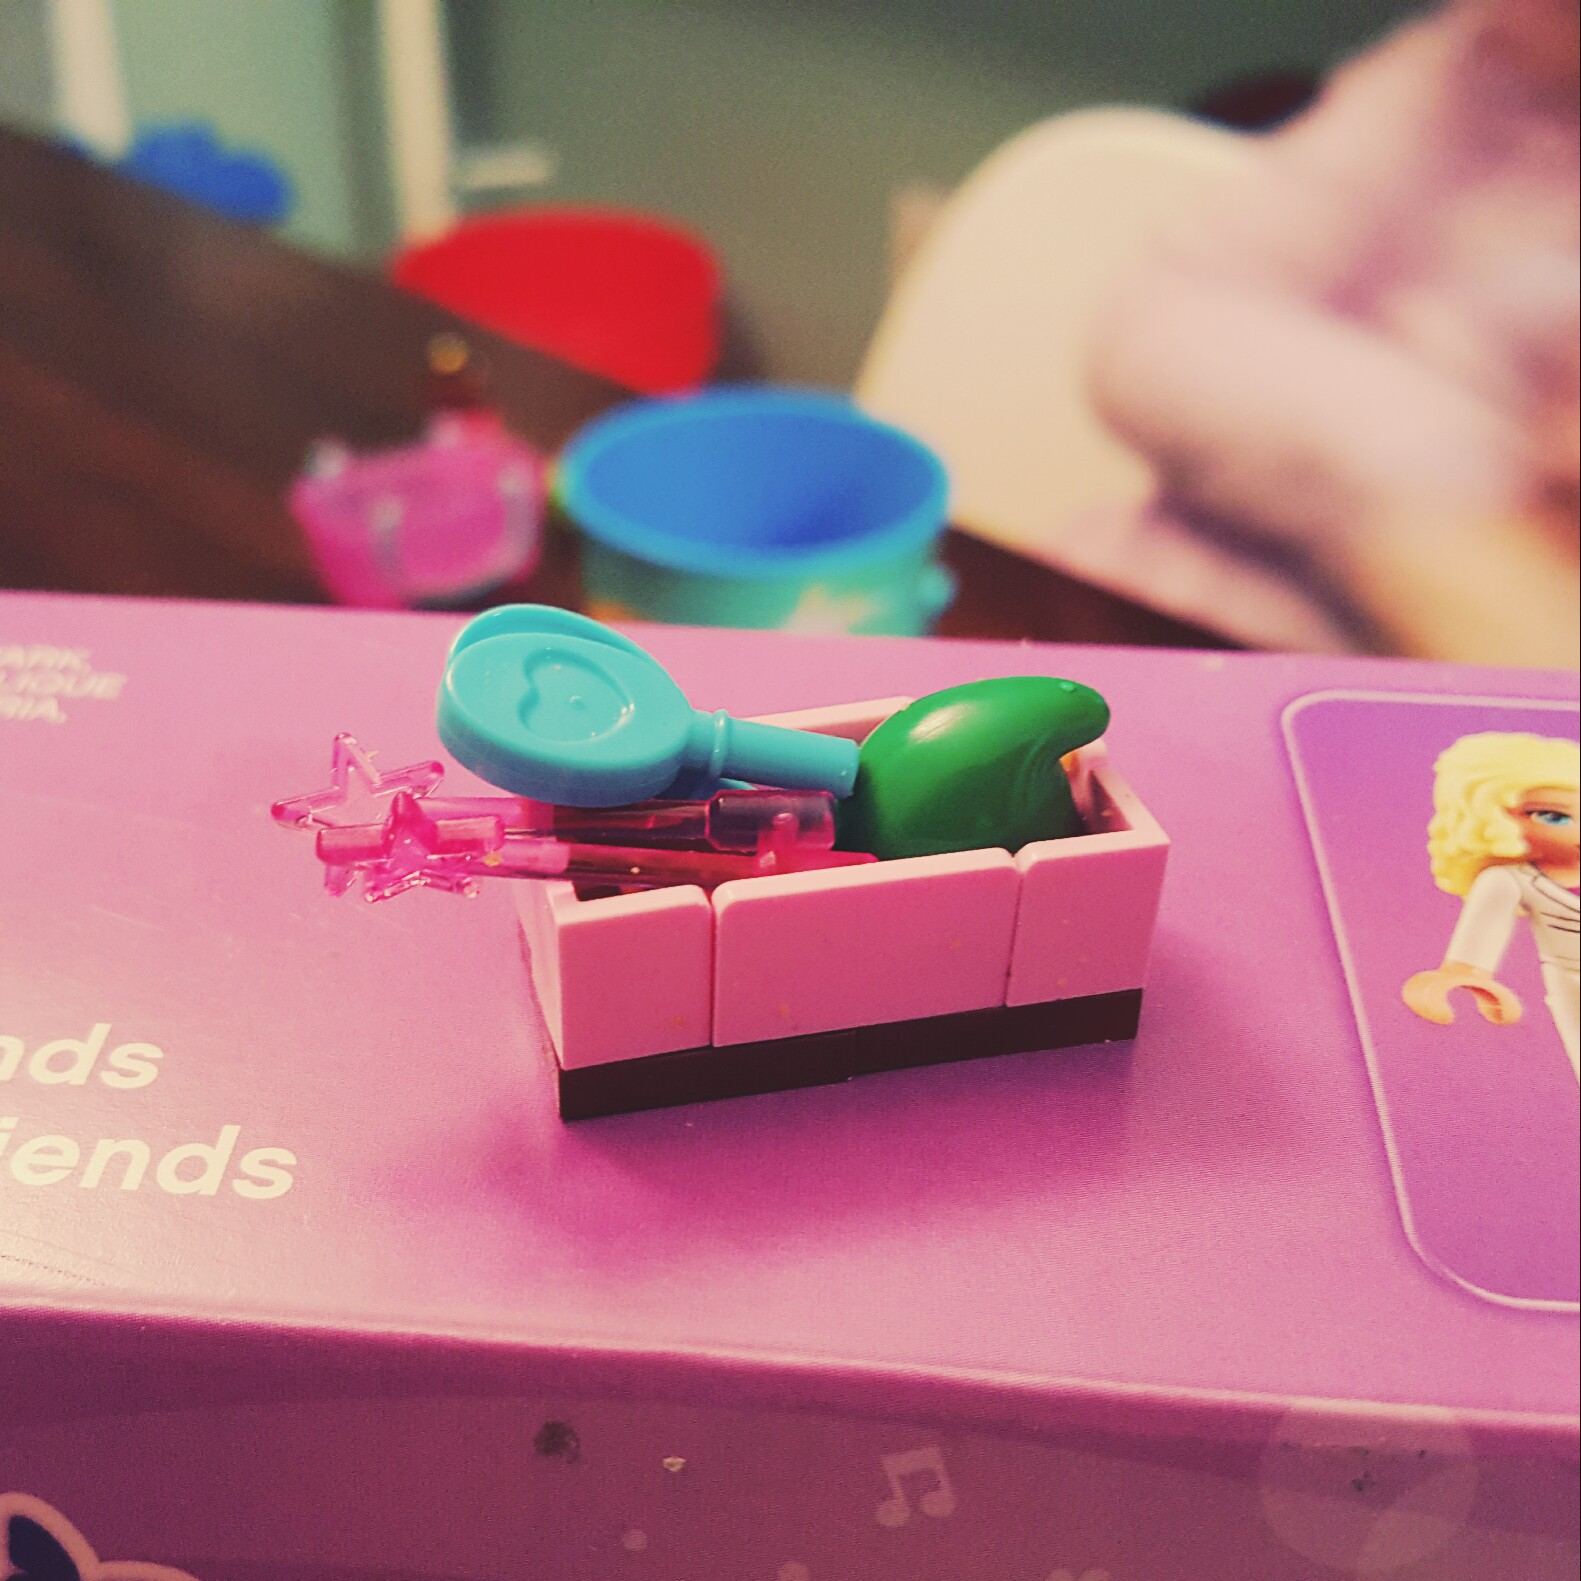 Day 11 Container with Accessories from LEGO Friends Advent Calendar